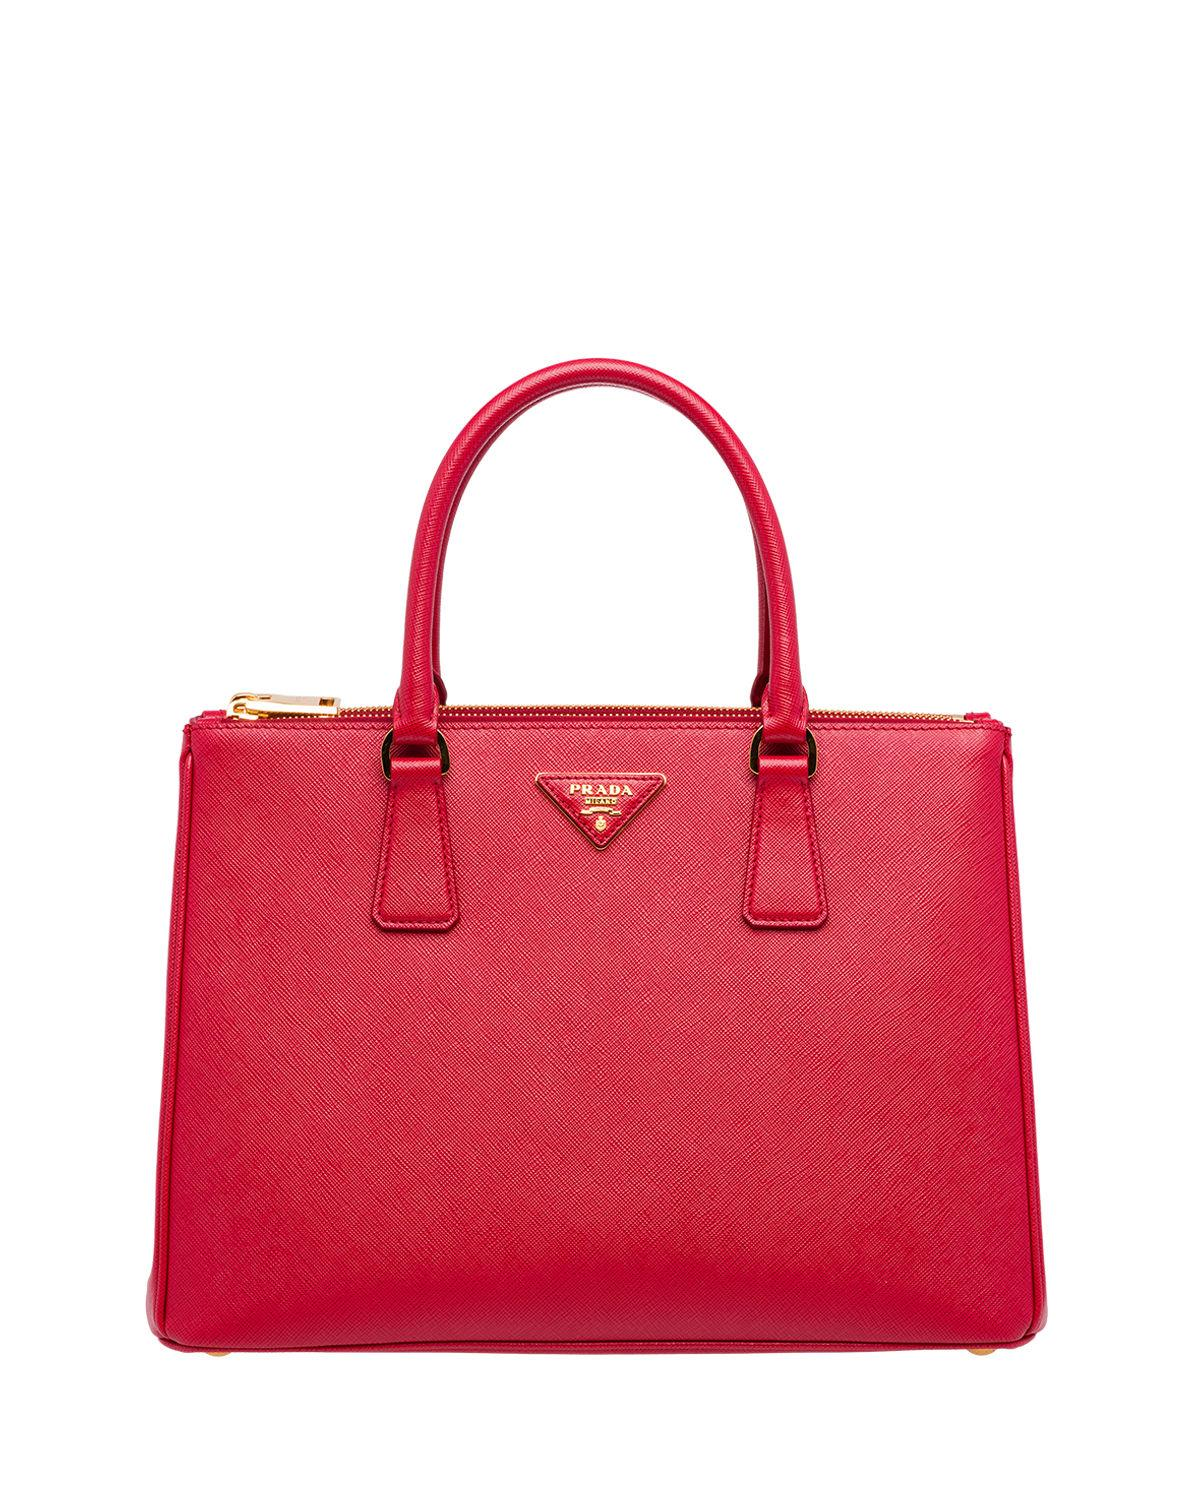 df0b2790b8b5 Prada Galleria Medium Saffiano Tote Bag In Red